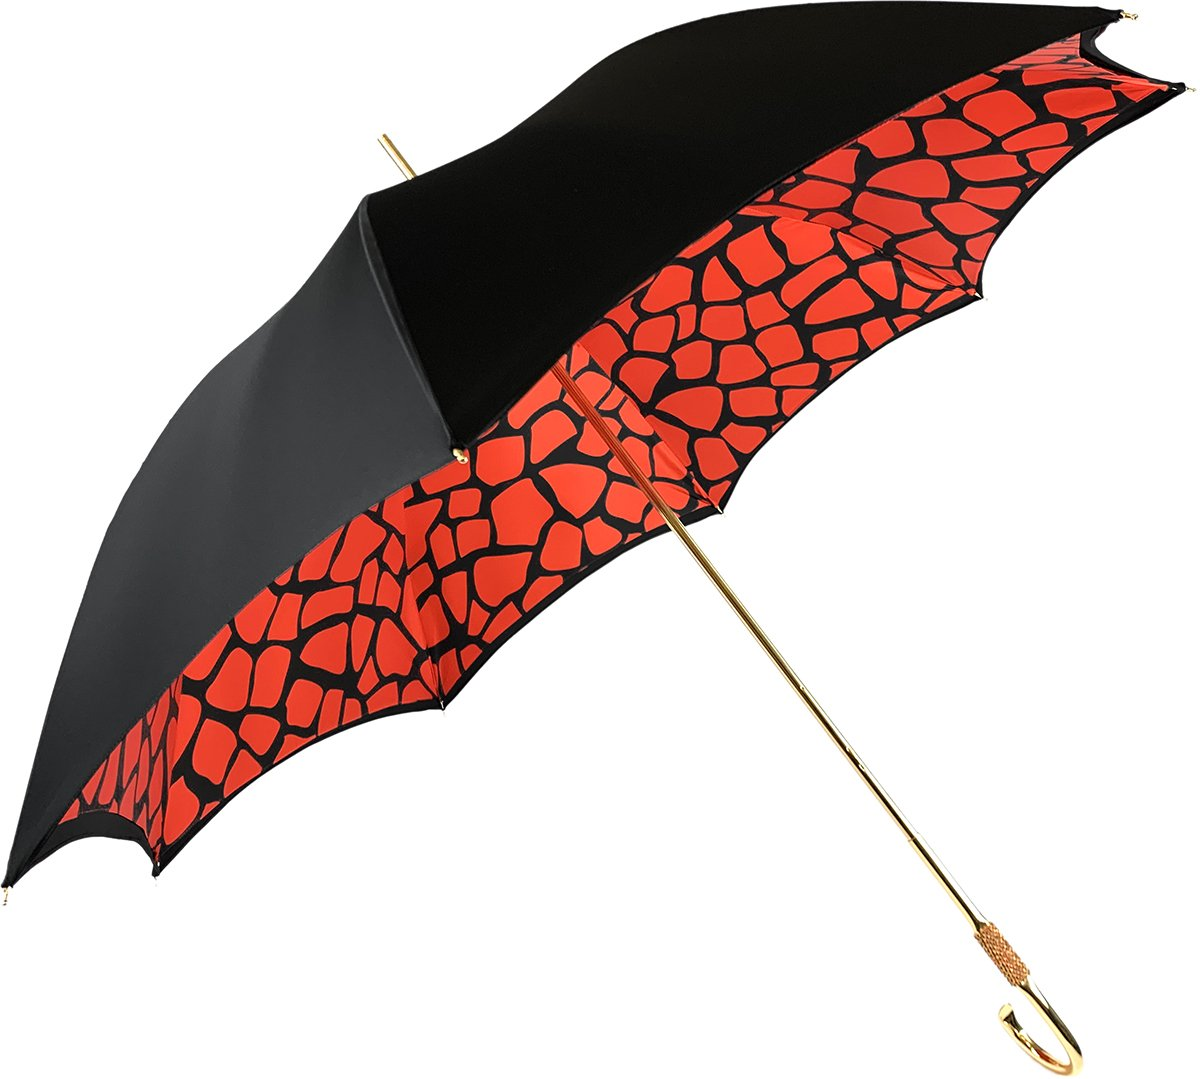 Black&Red Giraffe Print Pattern Inside - IL MARCHESATO LUXURY UMBRELLAS, CANES AND SHOEHORNS